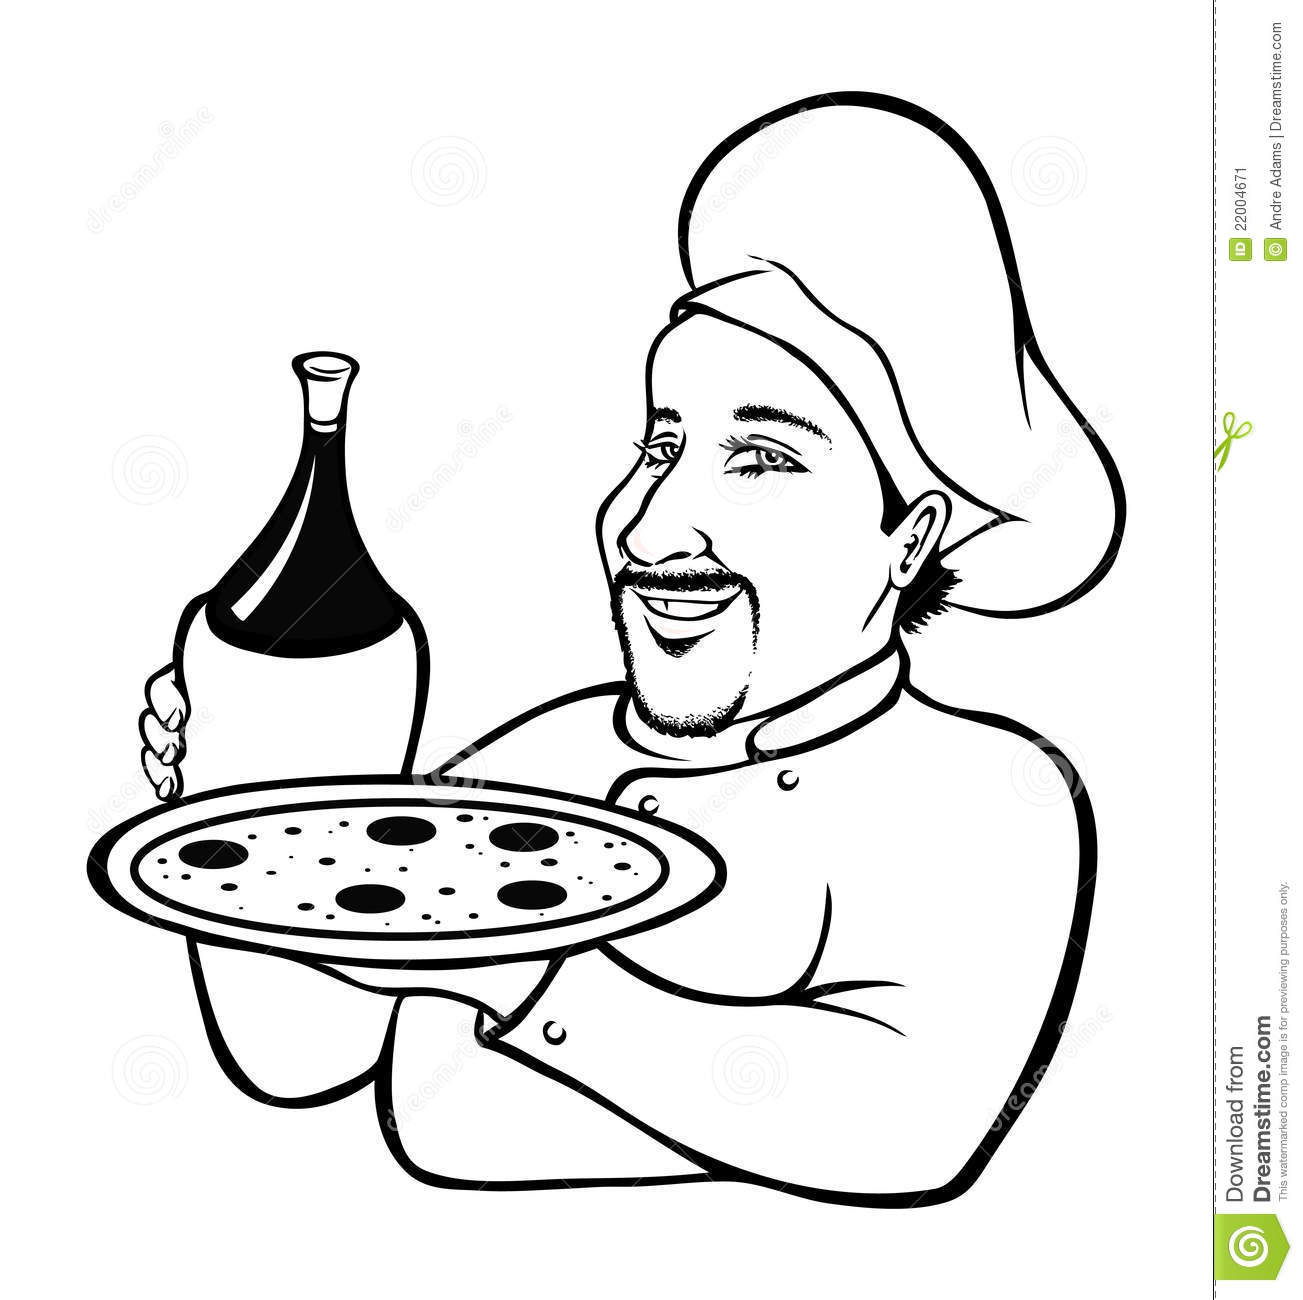 italian chef coloring book stock image image 22004671